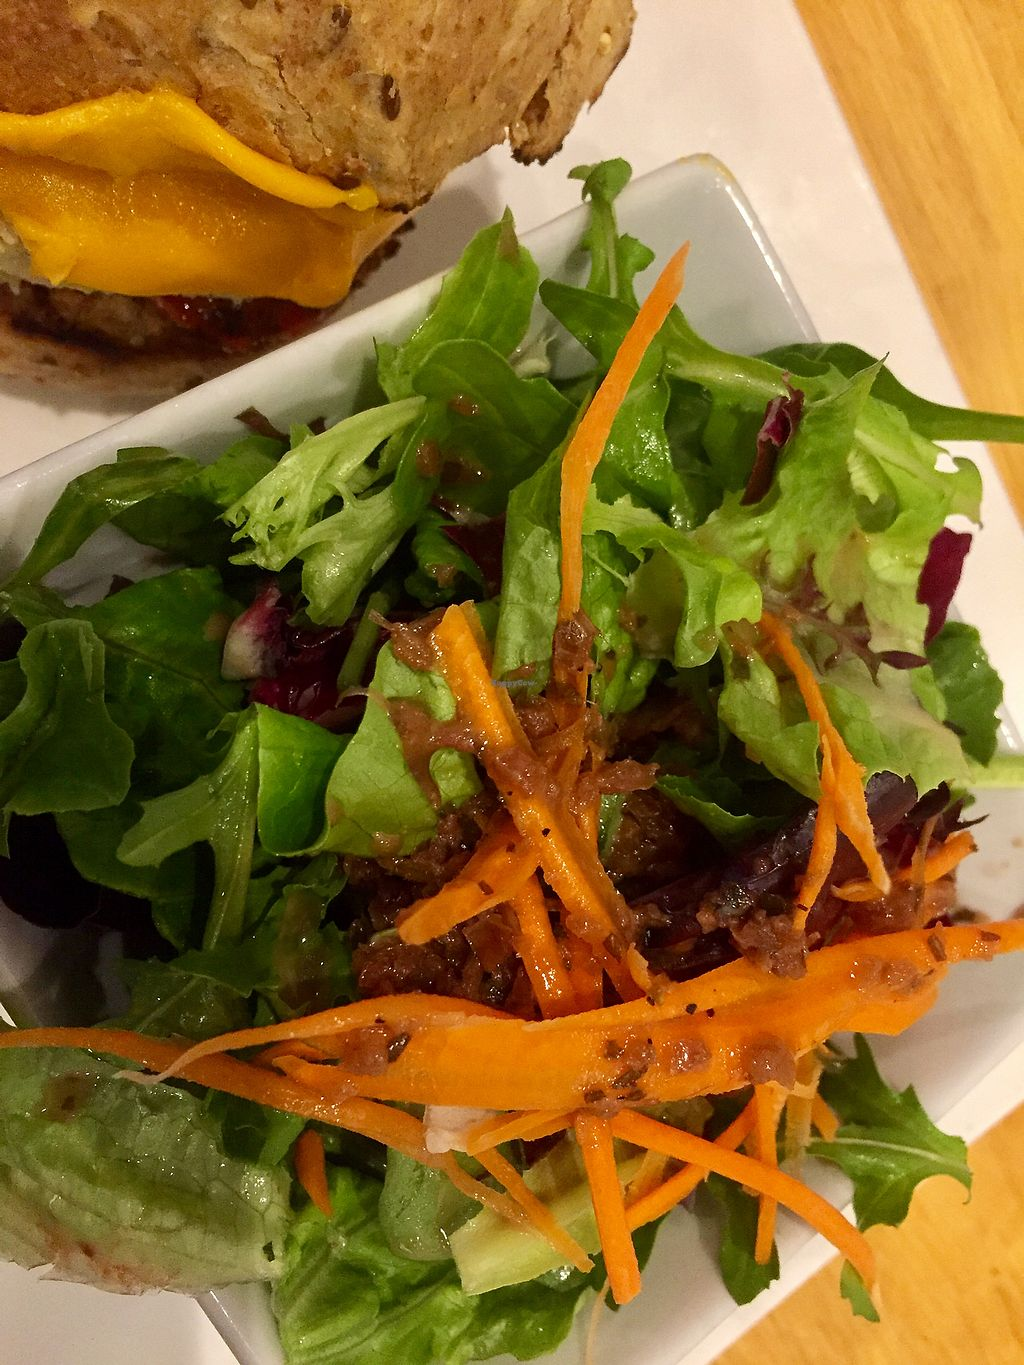 "Photo of Kingsbury Street Cafe  by <a href=""/members/profile/happycowgirl"">happycowgirl</a> <br/>Side salad  <br/> November 3, 2017  - <a href='/contact/abuse/image/30964/321562'>Report</a>"